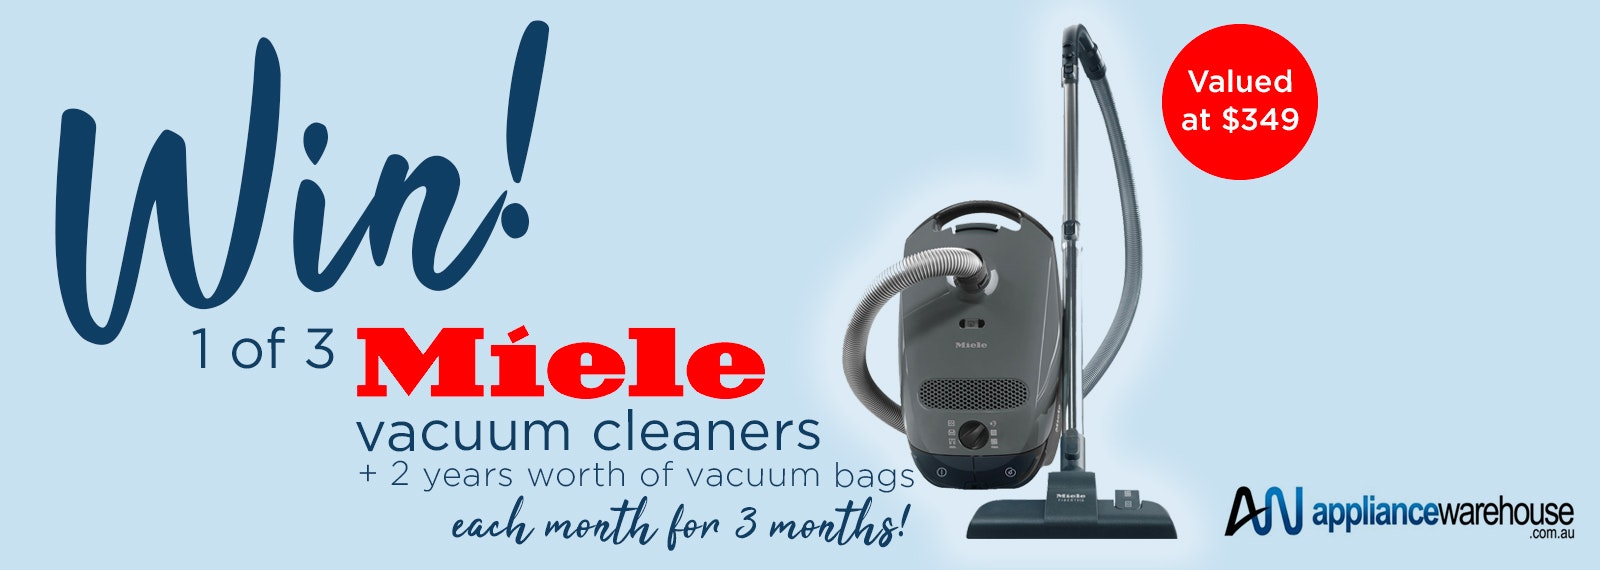 Win a Miele Vacuum Cleaner Each Month for Three Months PLUS 2 Years Supply of Vac Bags from Appliance Warehouse